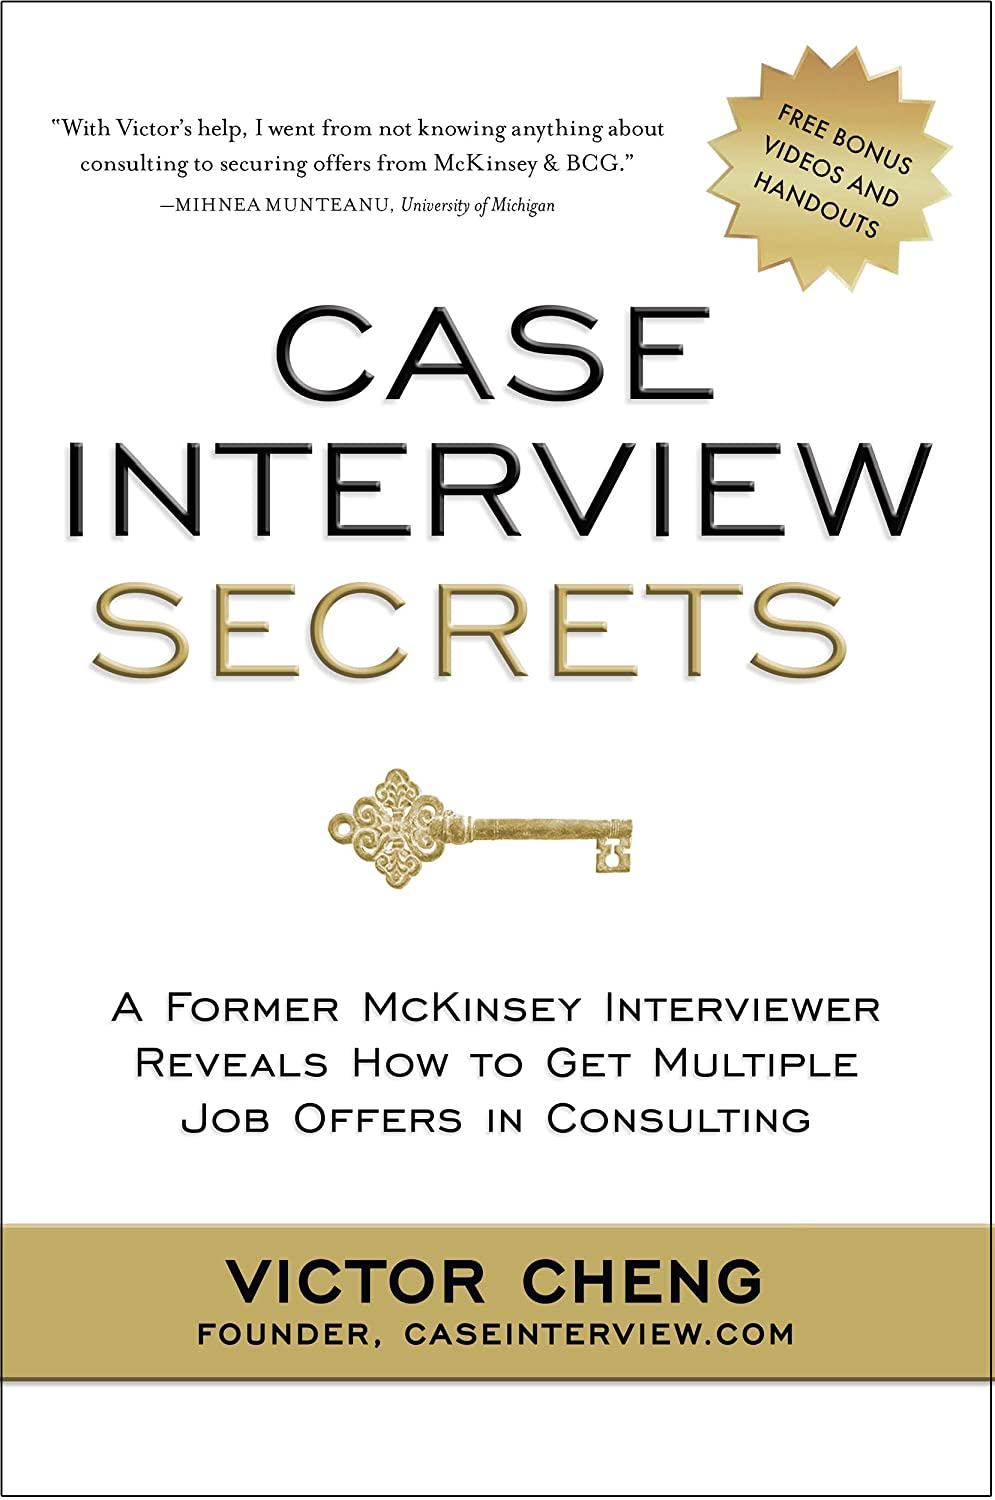 Case Interview Secrets: A Former McKinsey Interviewer Reveals How to Get  Multiple Job Offers in Consulting eBook: Victor Cheng: Amazon com au:  Kindle